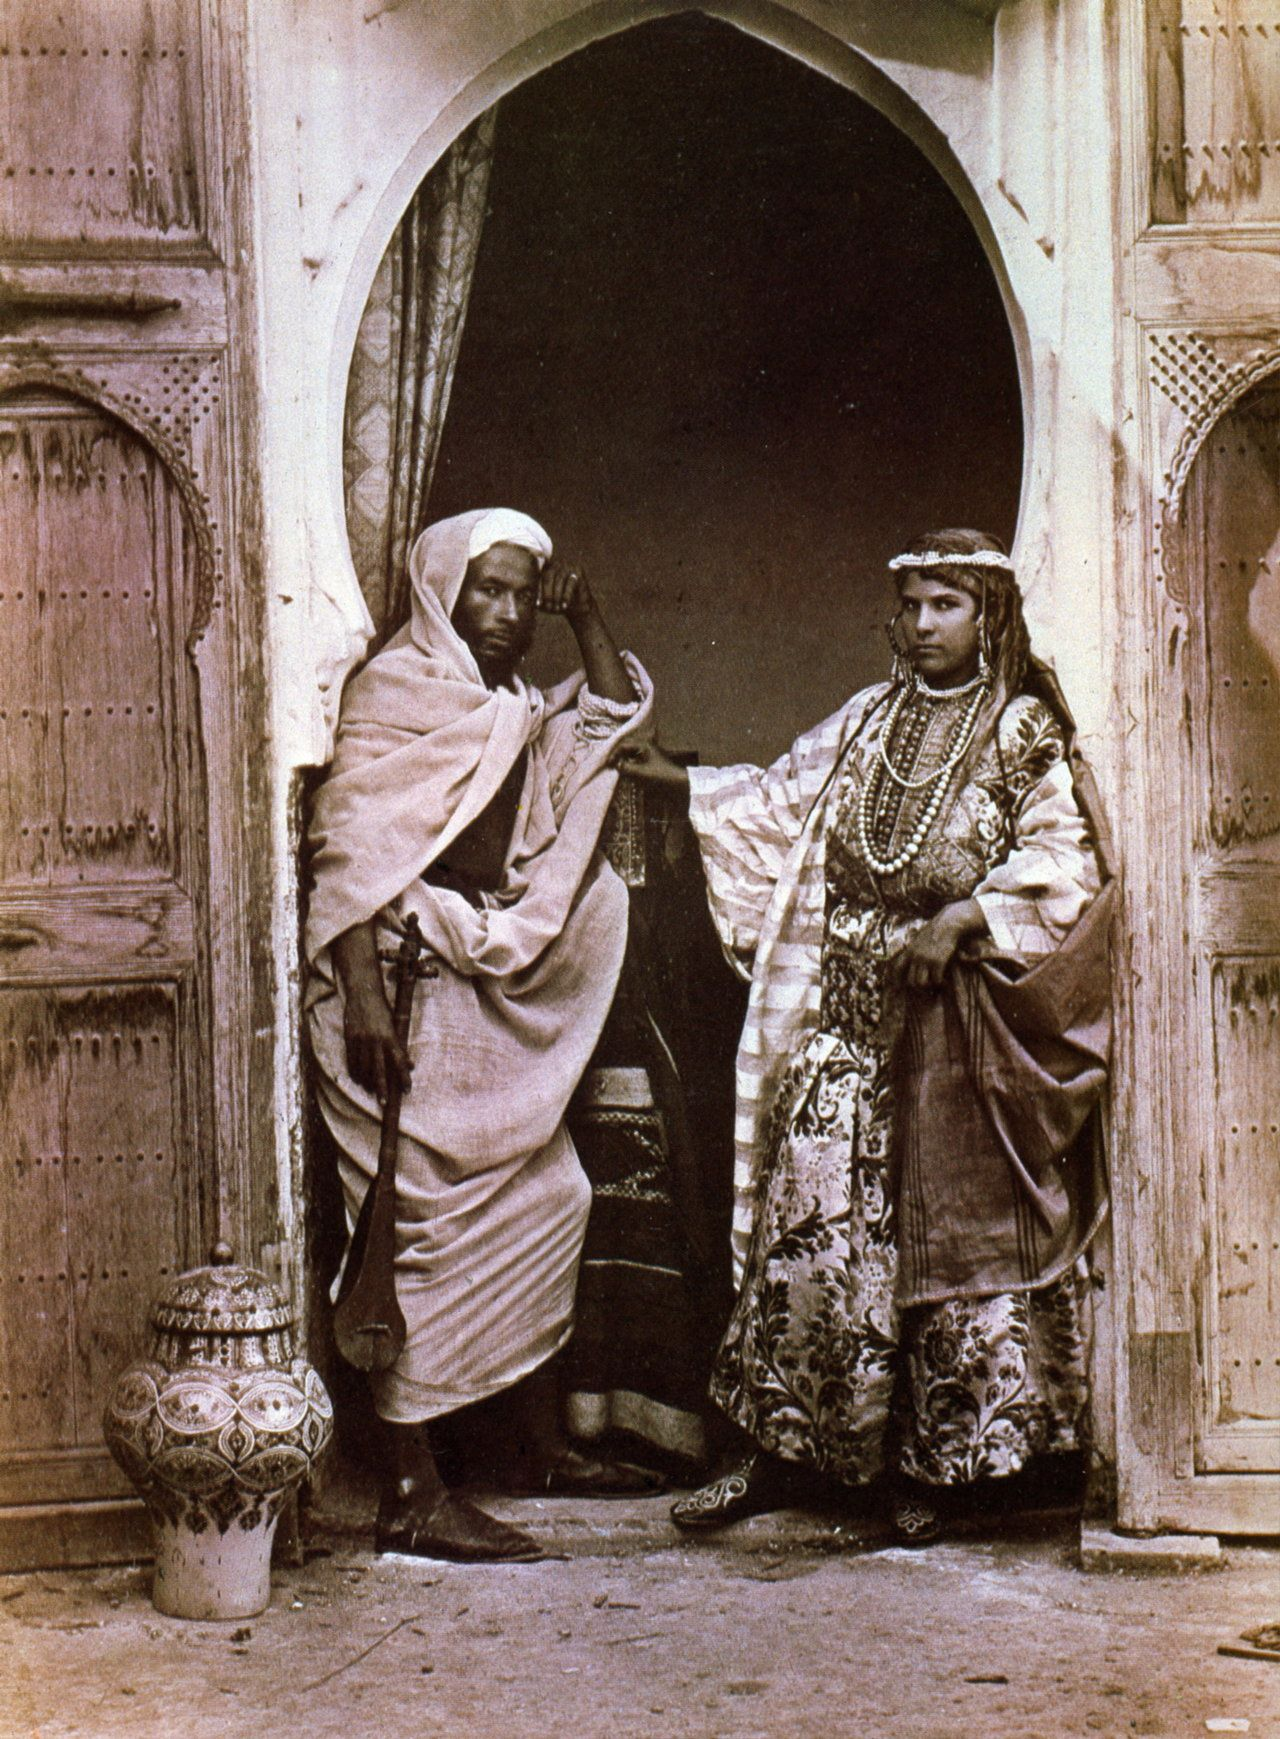 Berber Teppiche Marrakesch Africa Berber Couple Morocco People Of The World